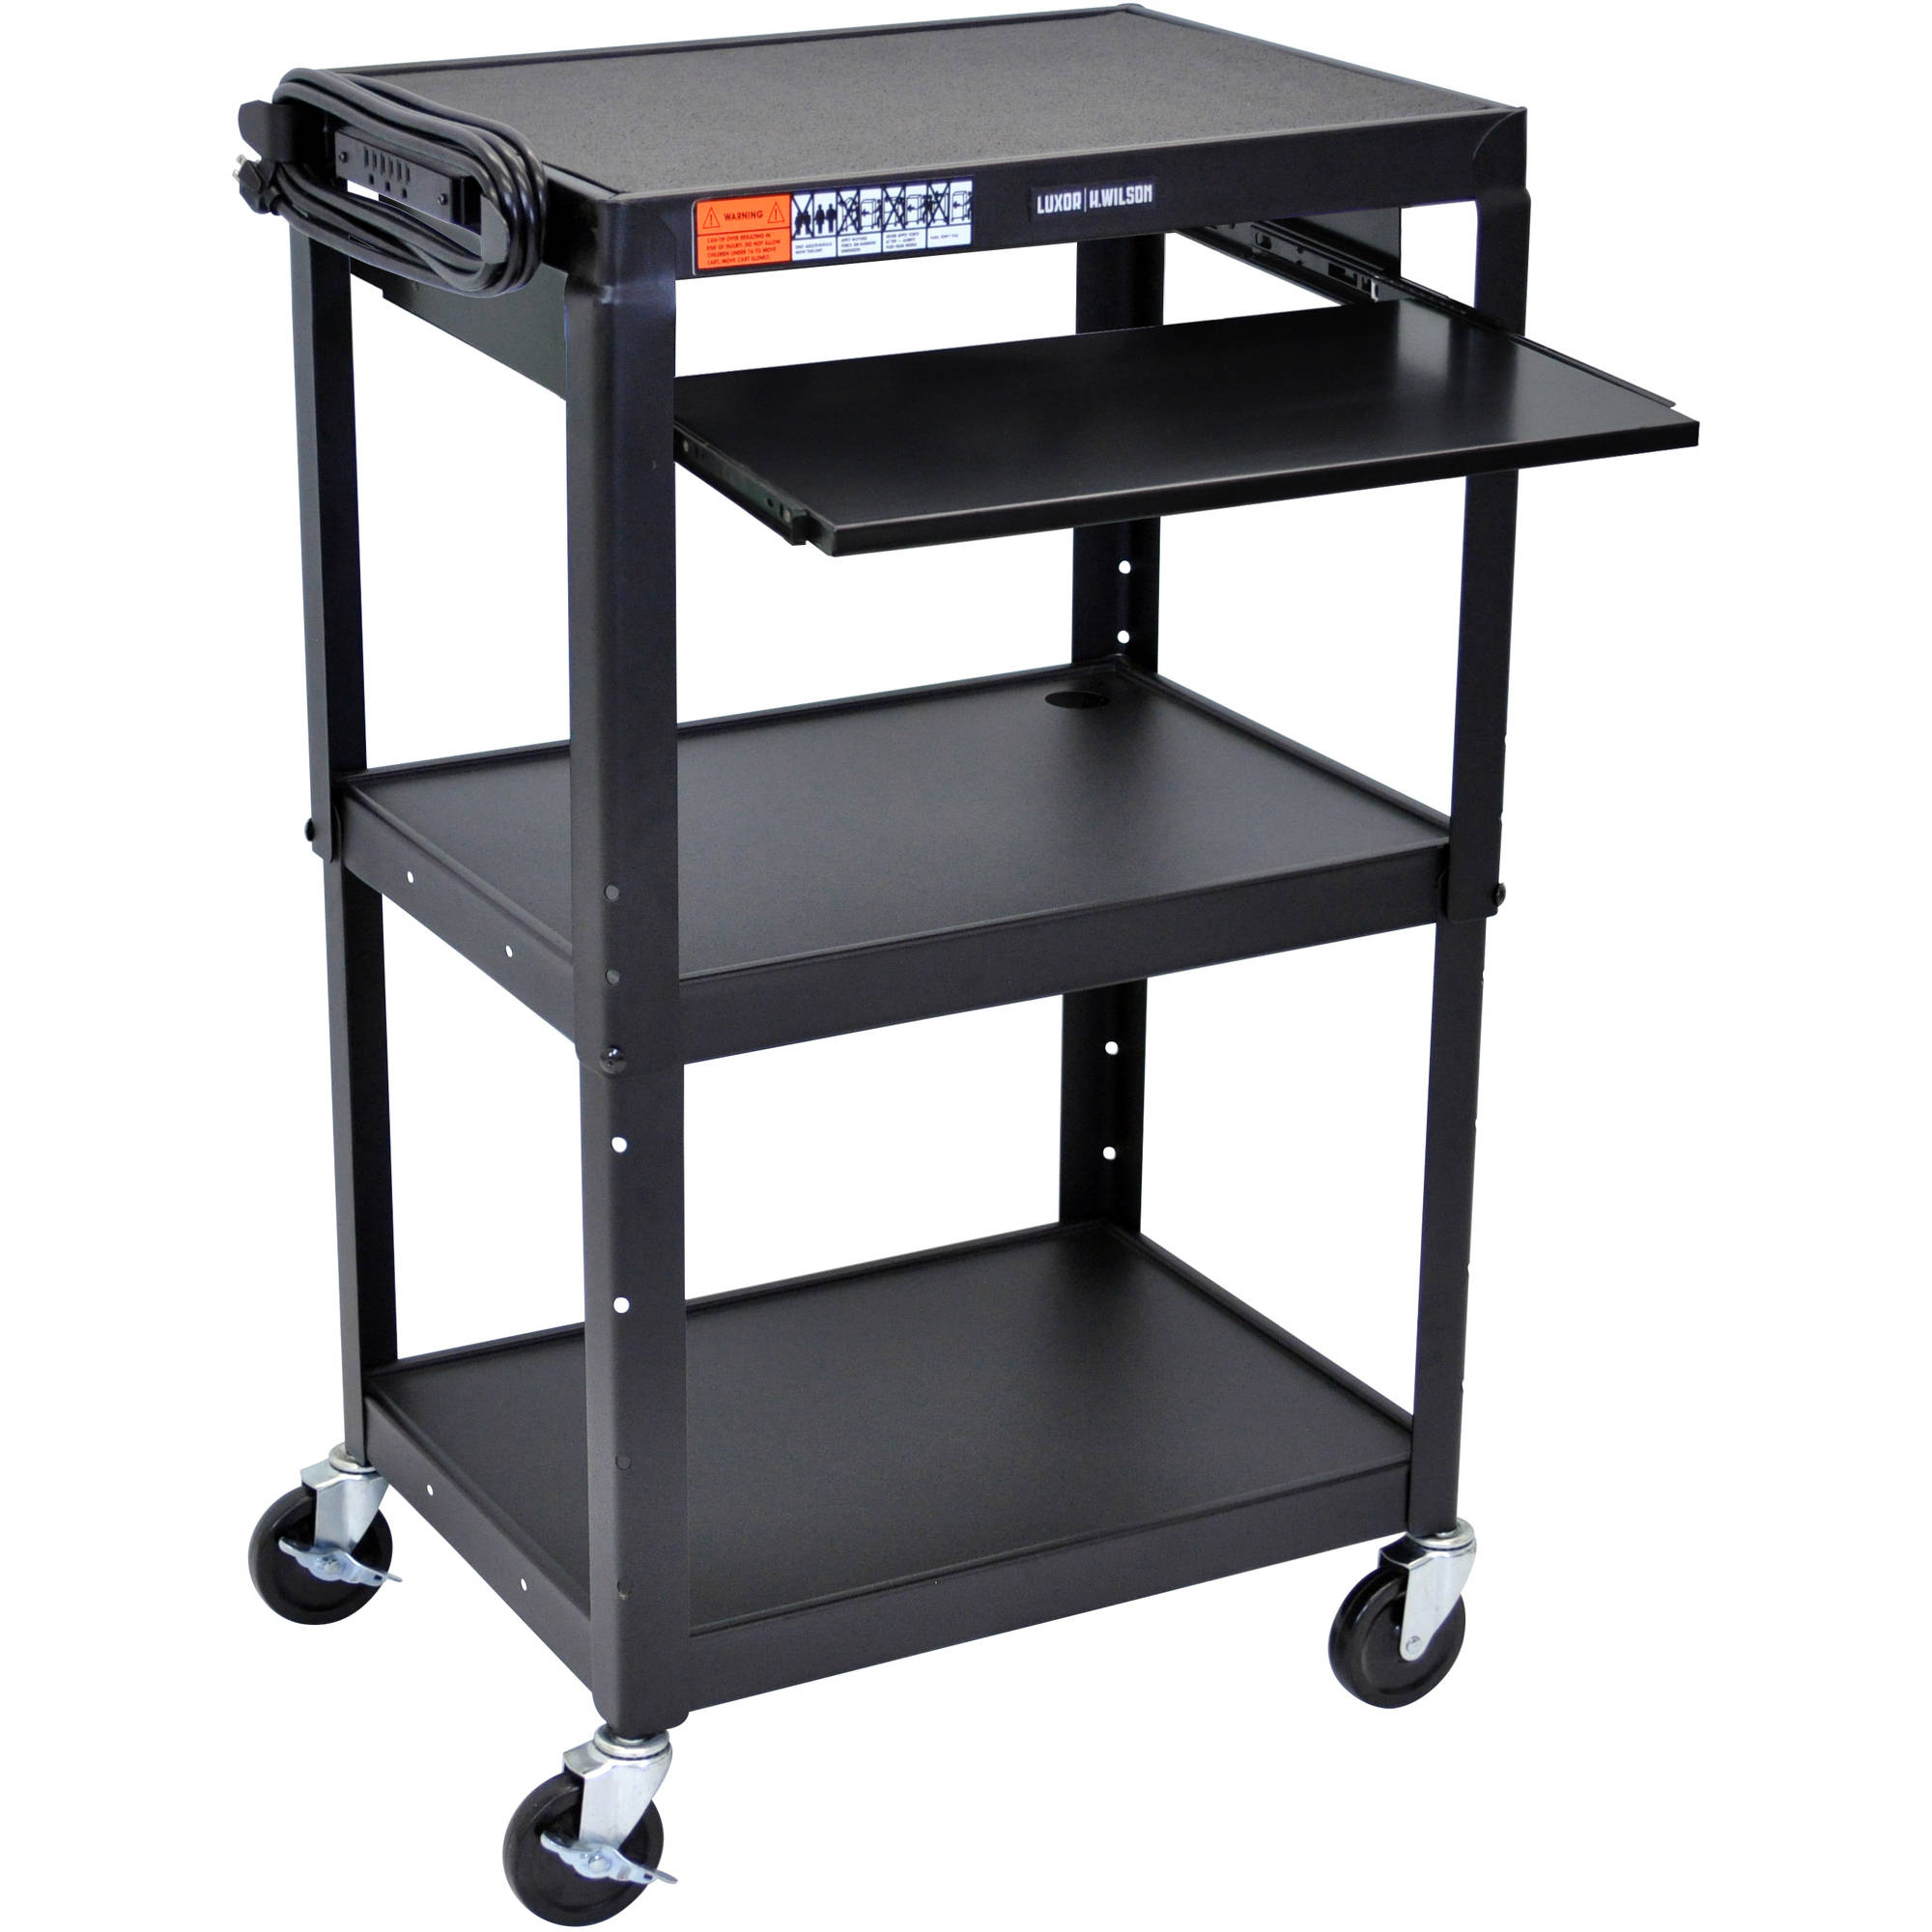 Luxor Steel Adjustable Height A/V Cart with Pullout Keyboard Tray